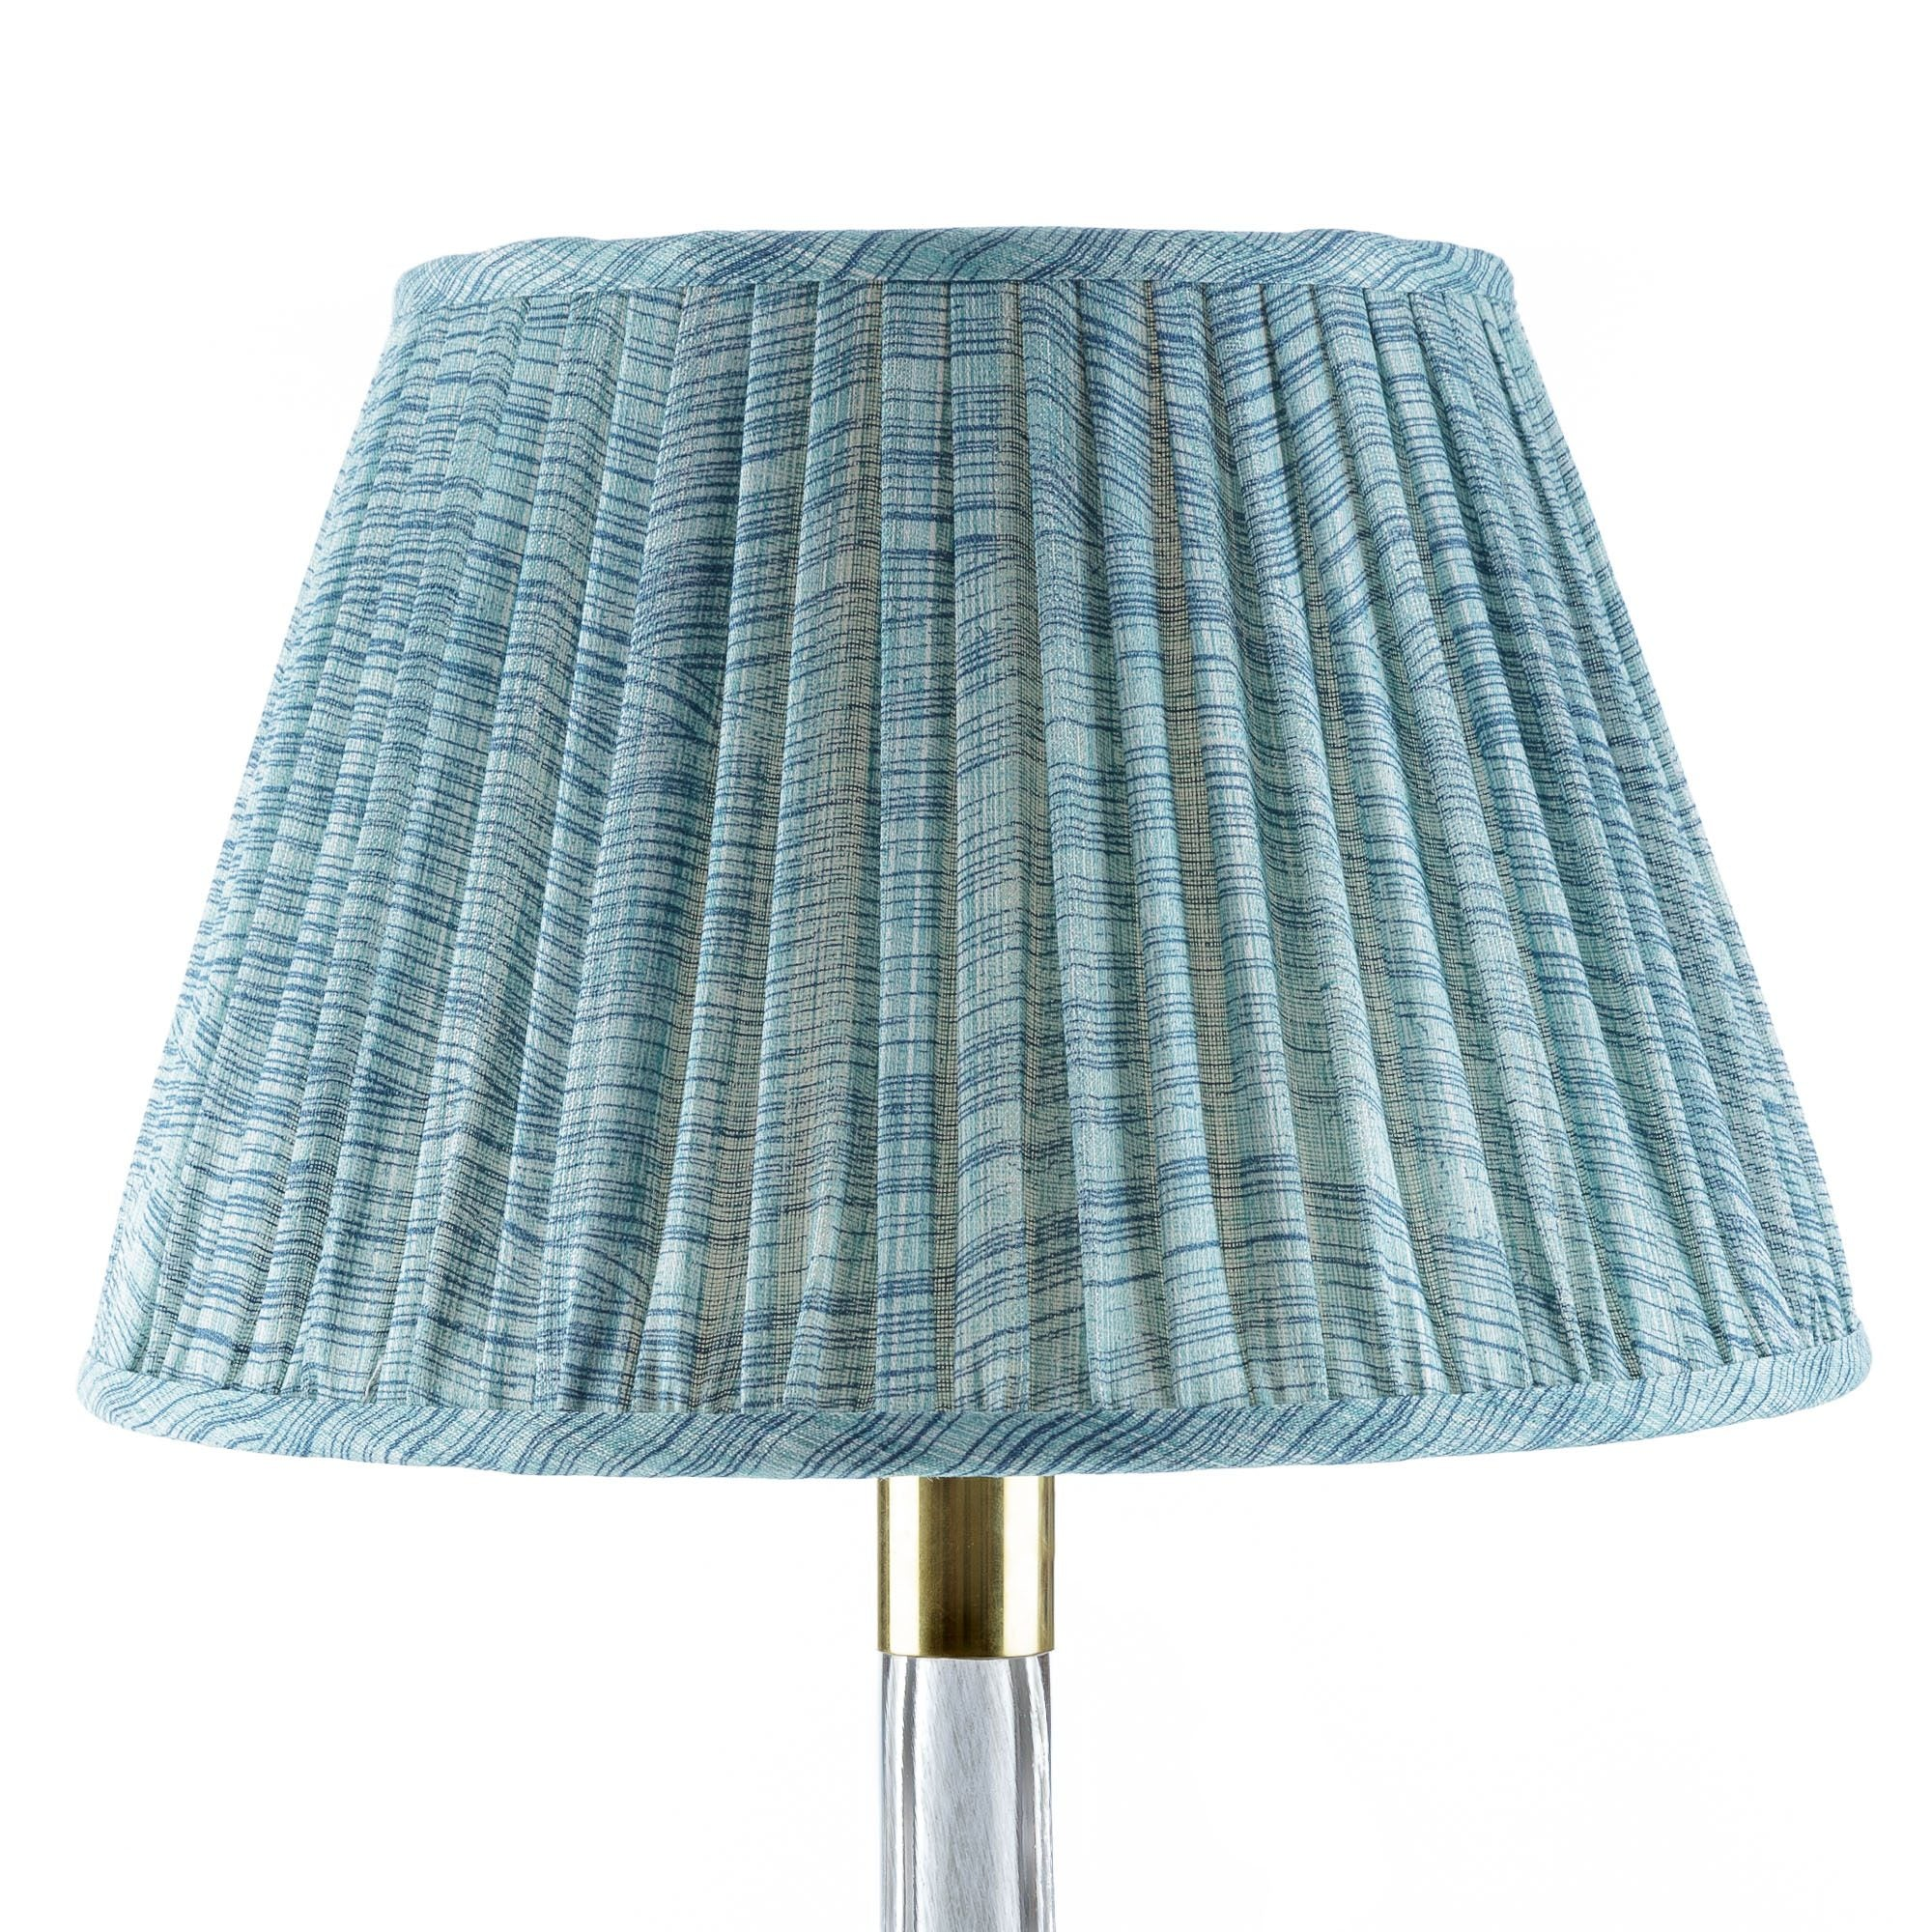 Fermoie Lampshade in Azure Blue Wave